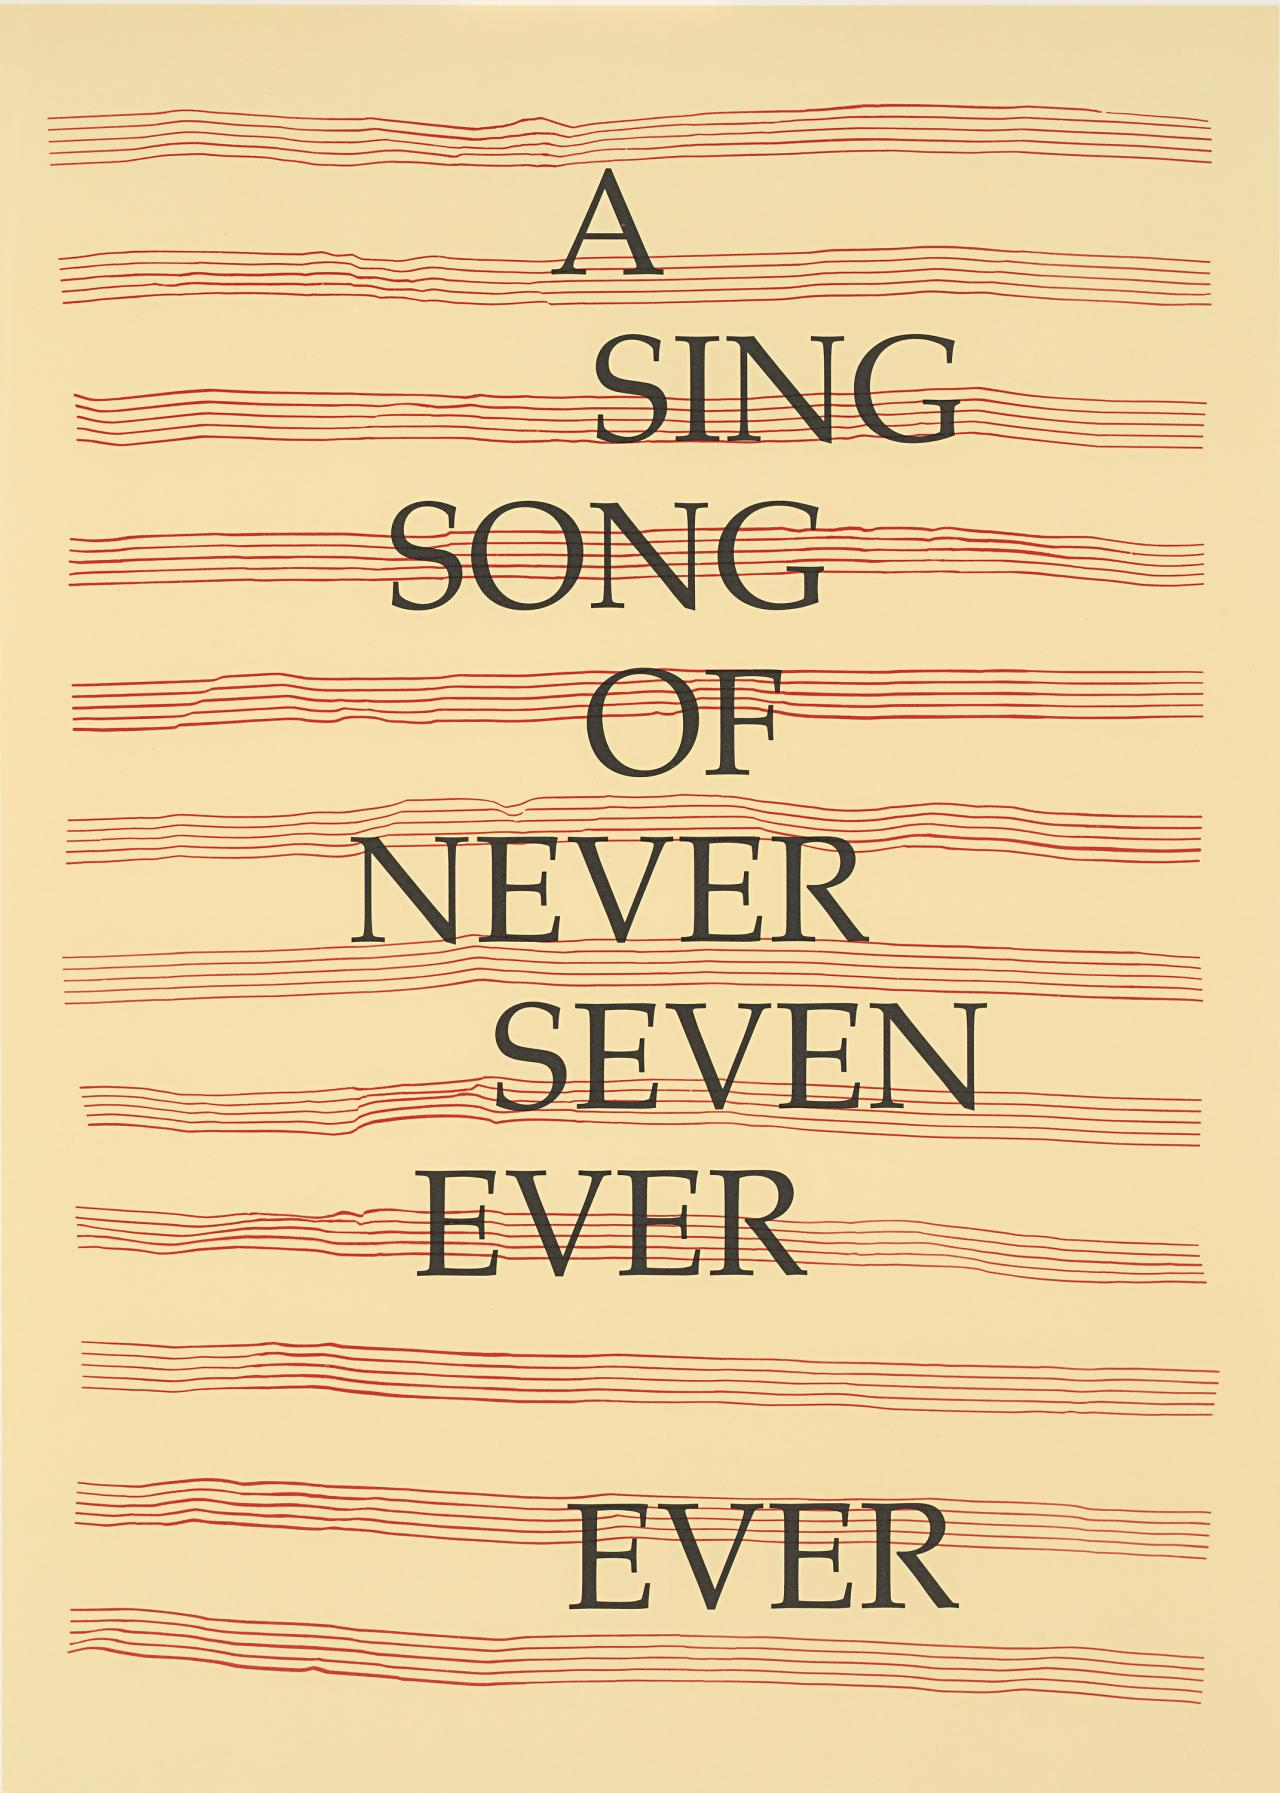 A sing song of never seven ever/ever